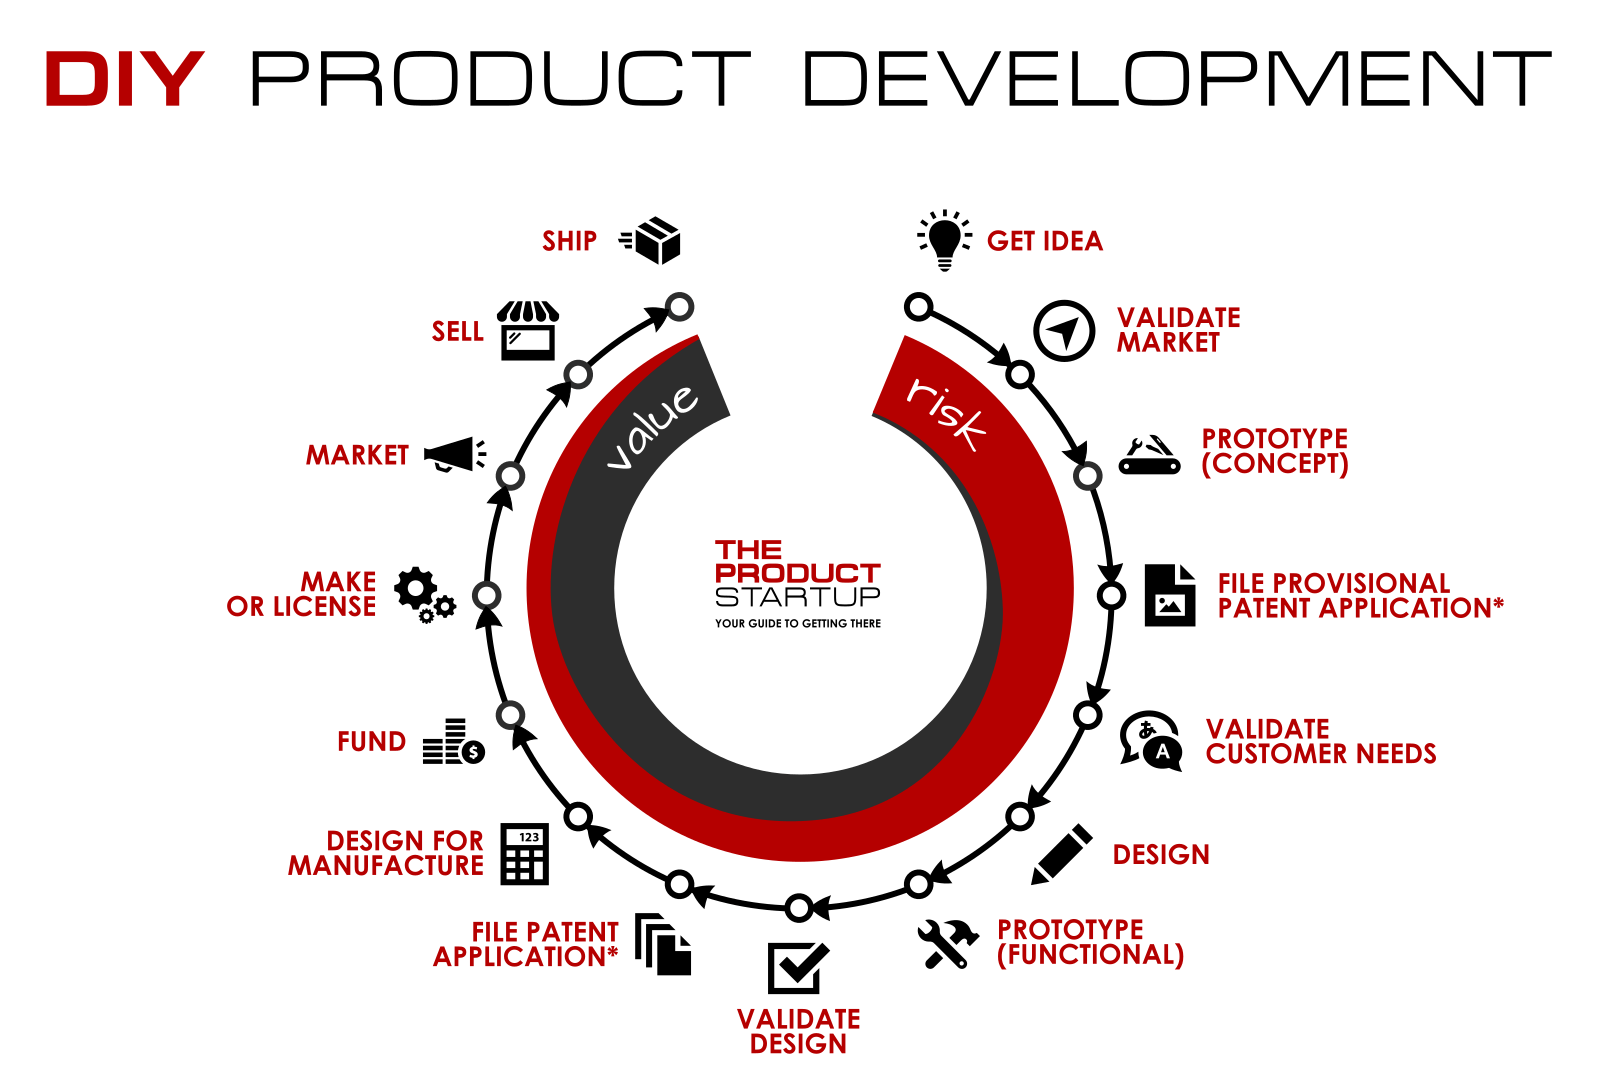 DIY amazon product development cycle